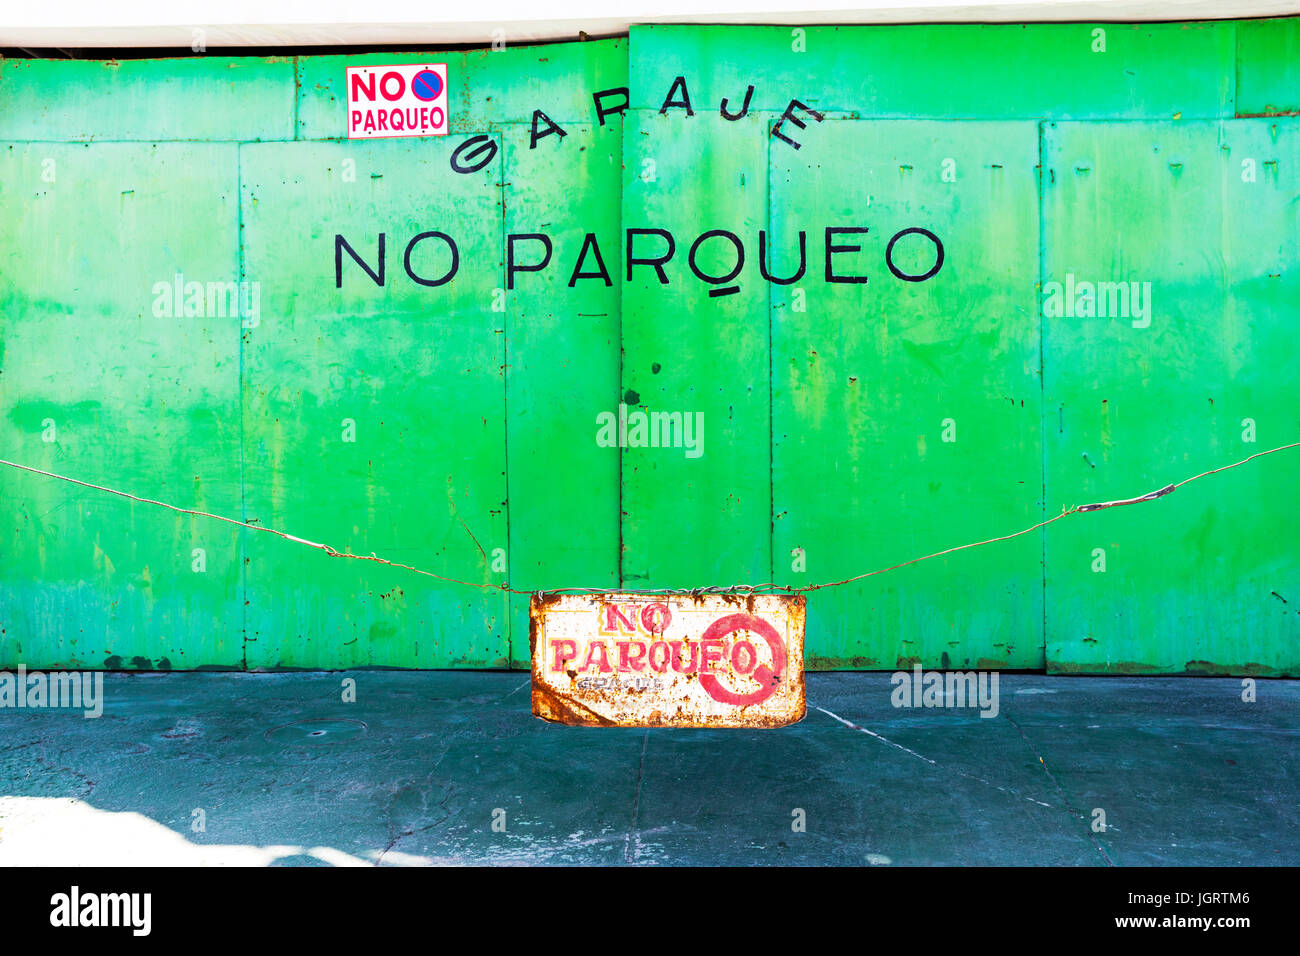 No parking sign, No Parking, garage no parking, garaje no parqueo, parking restriction, no parking signs, parking - Stock Image